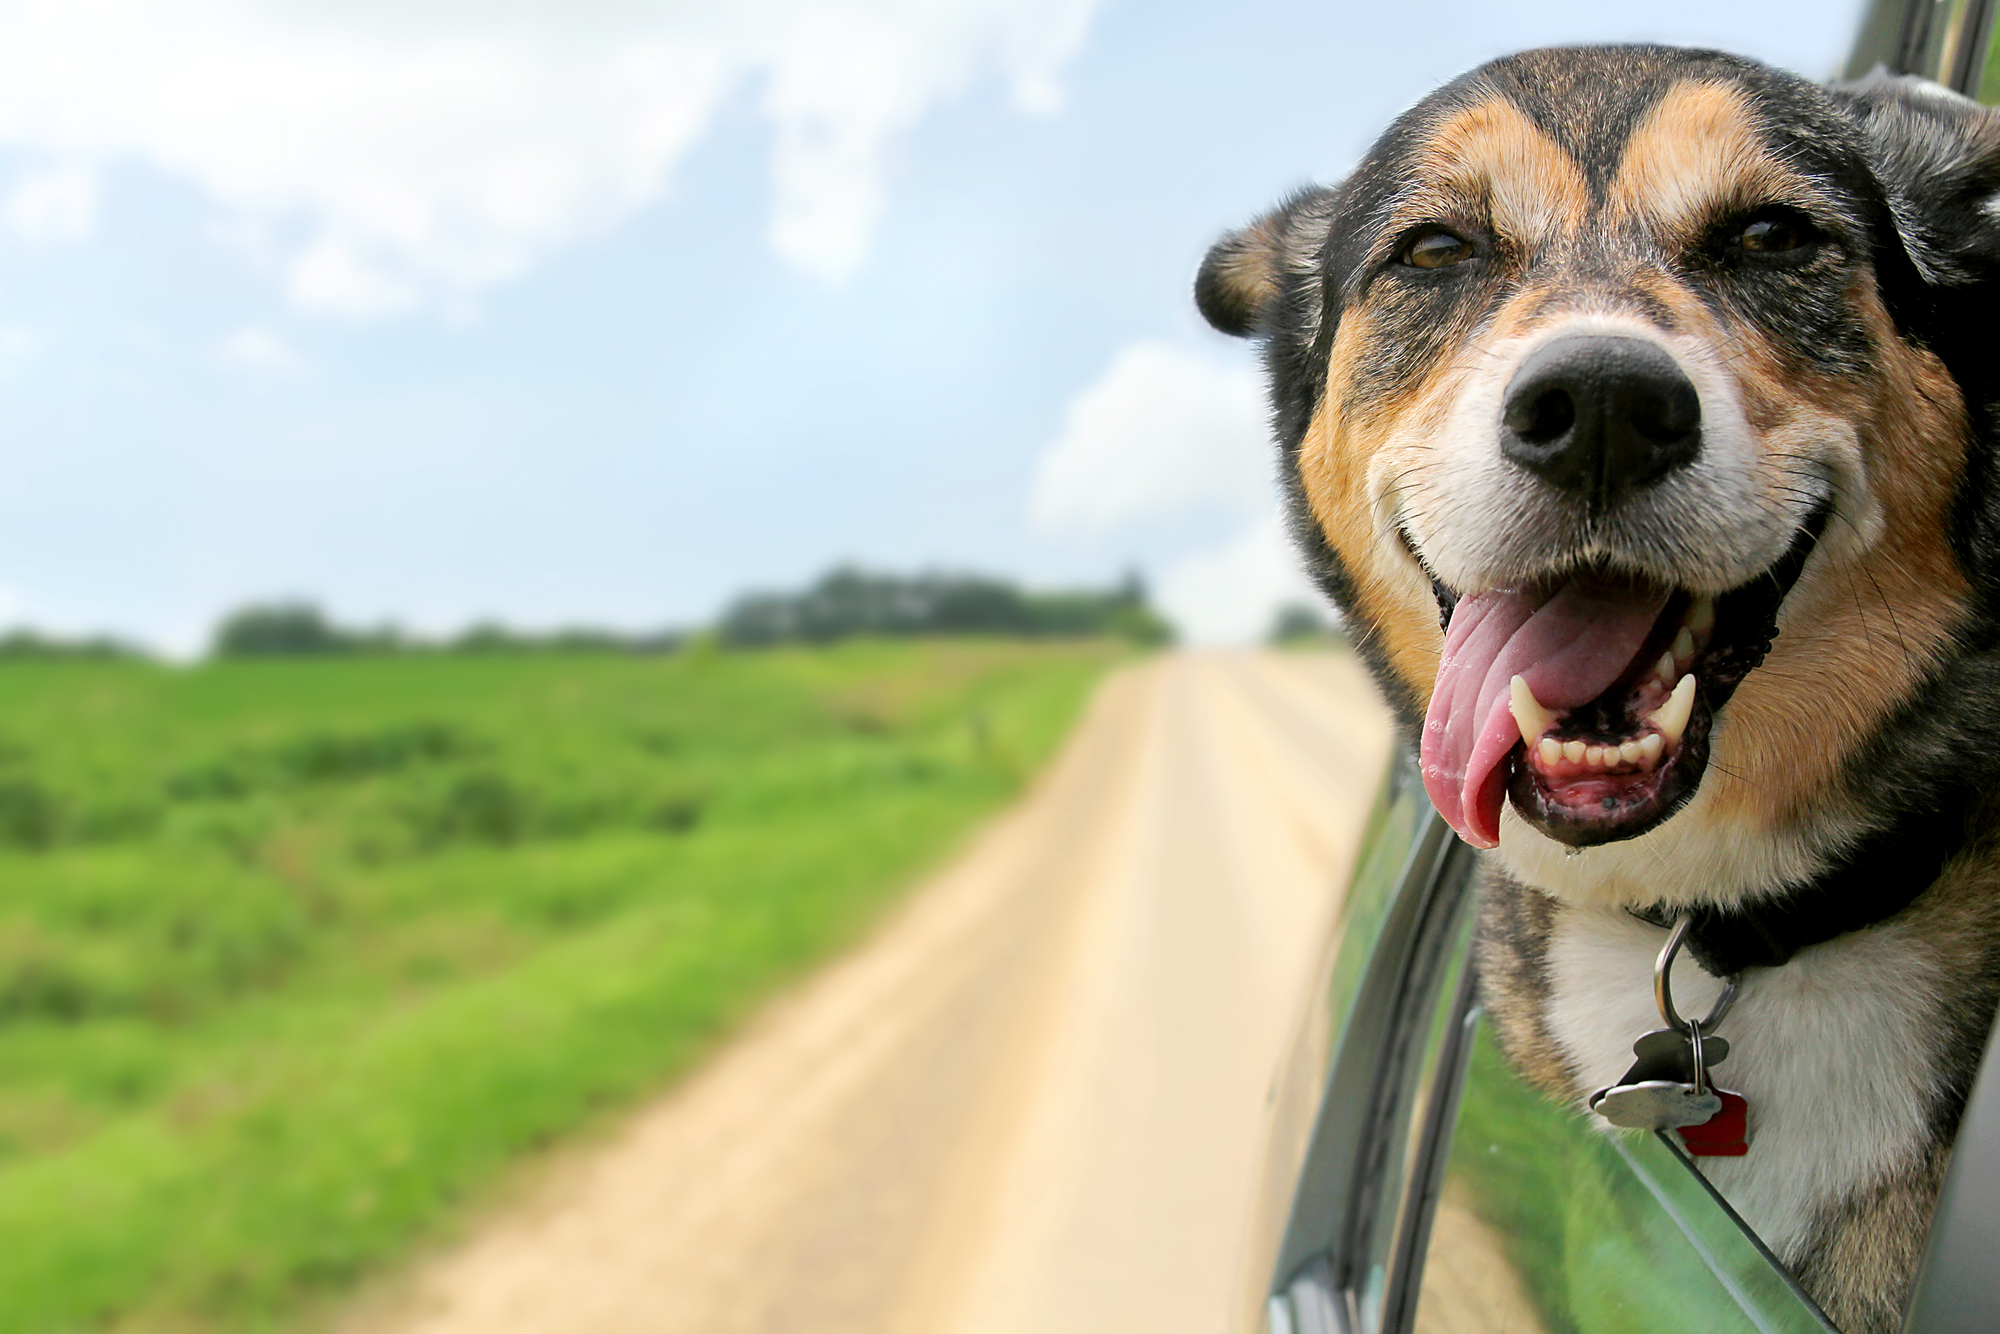 A dog enjoys ticking its head out of the car window